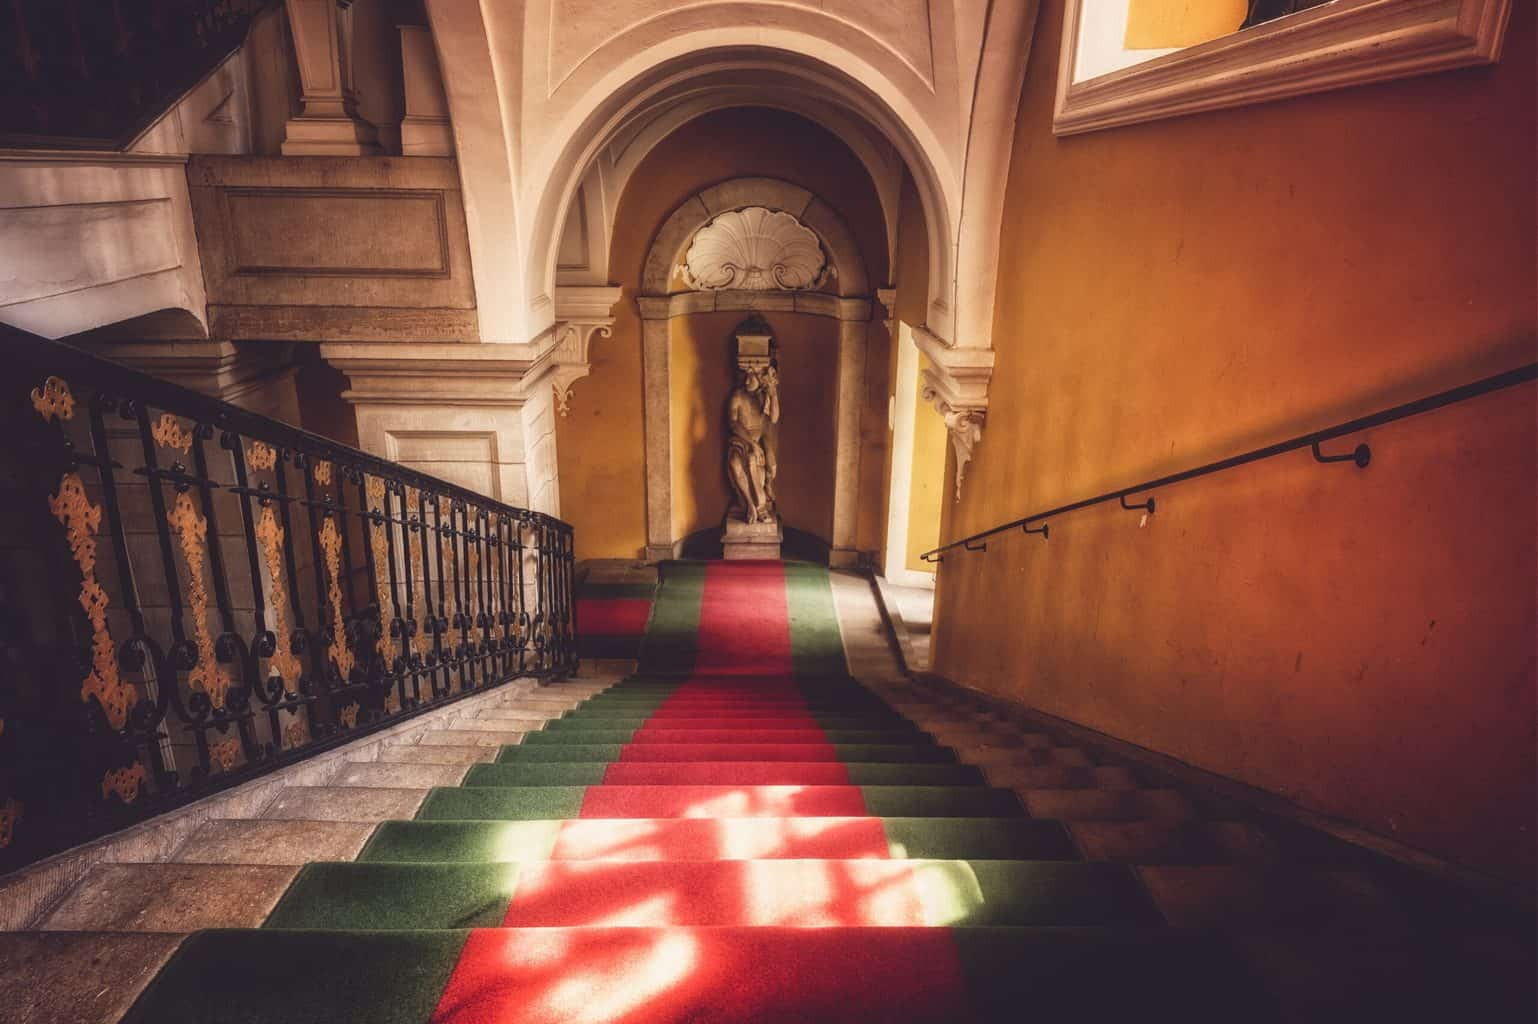 Stairs with red and green tone carpet